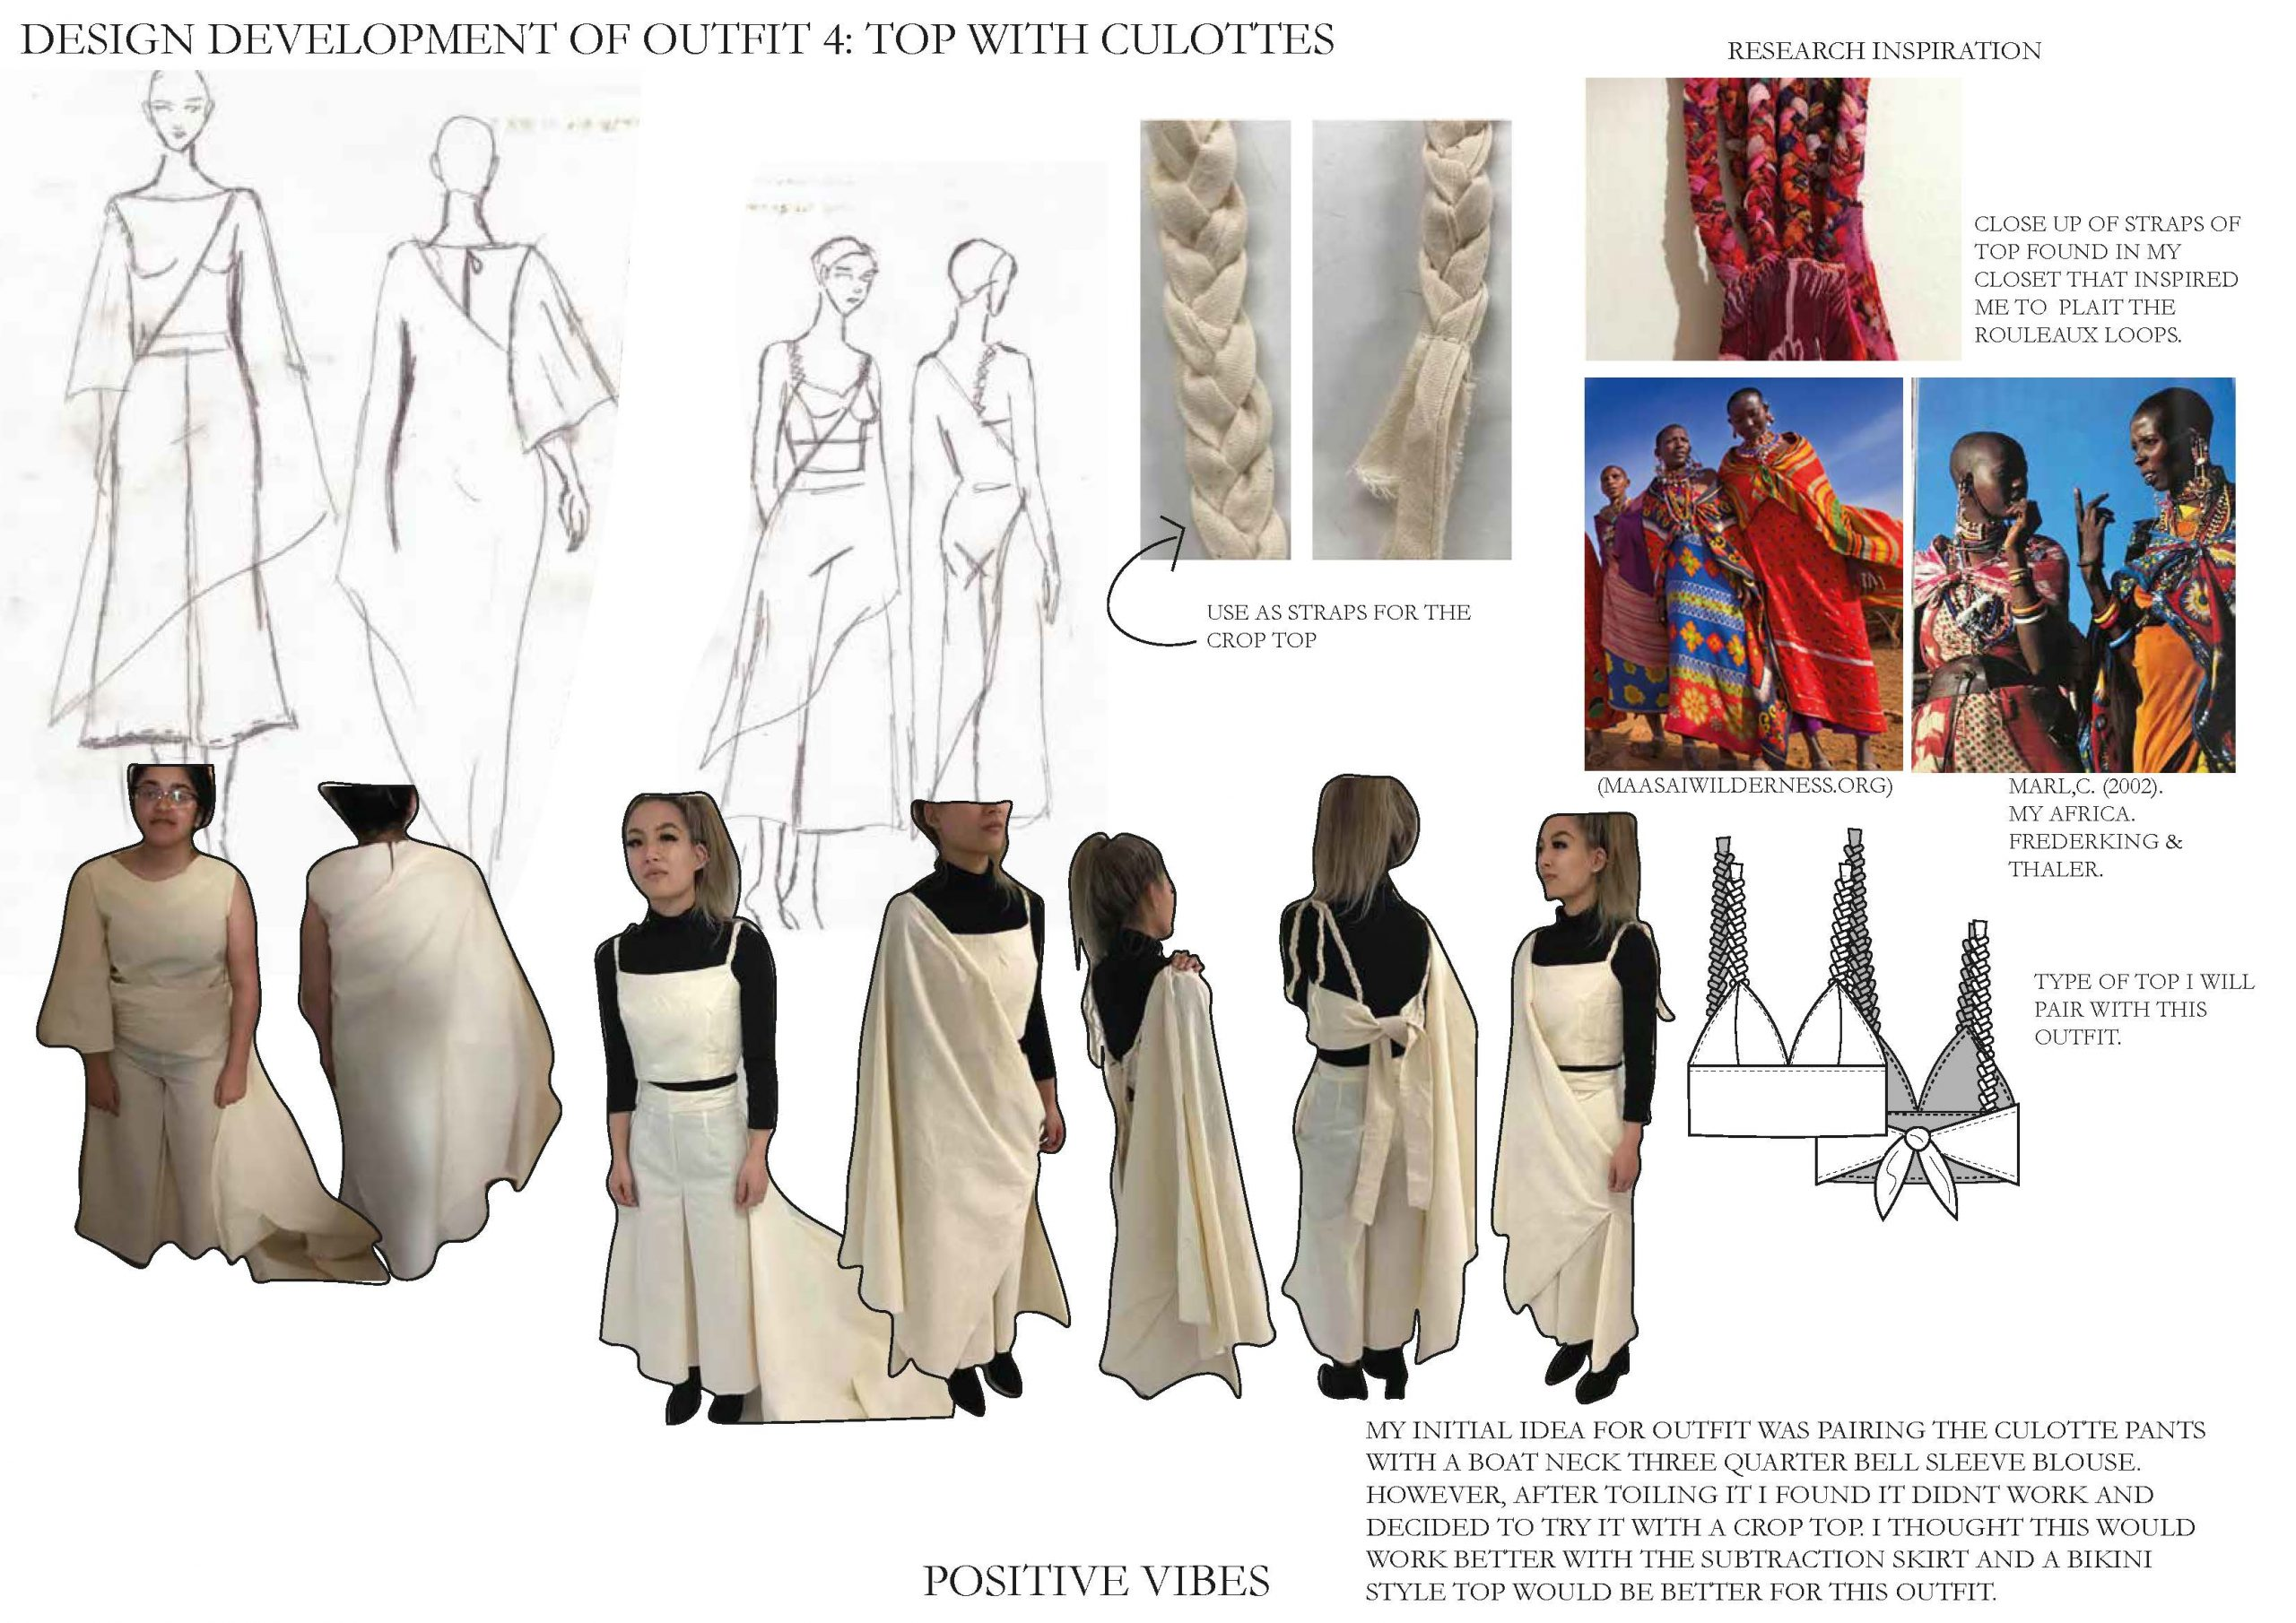 Positive Vibes Design Development of Outfit Four Image